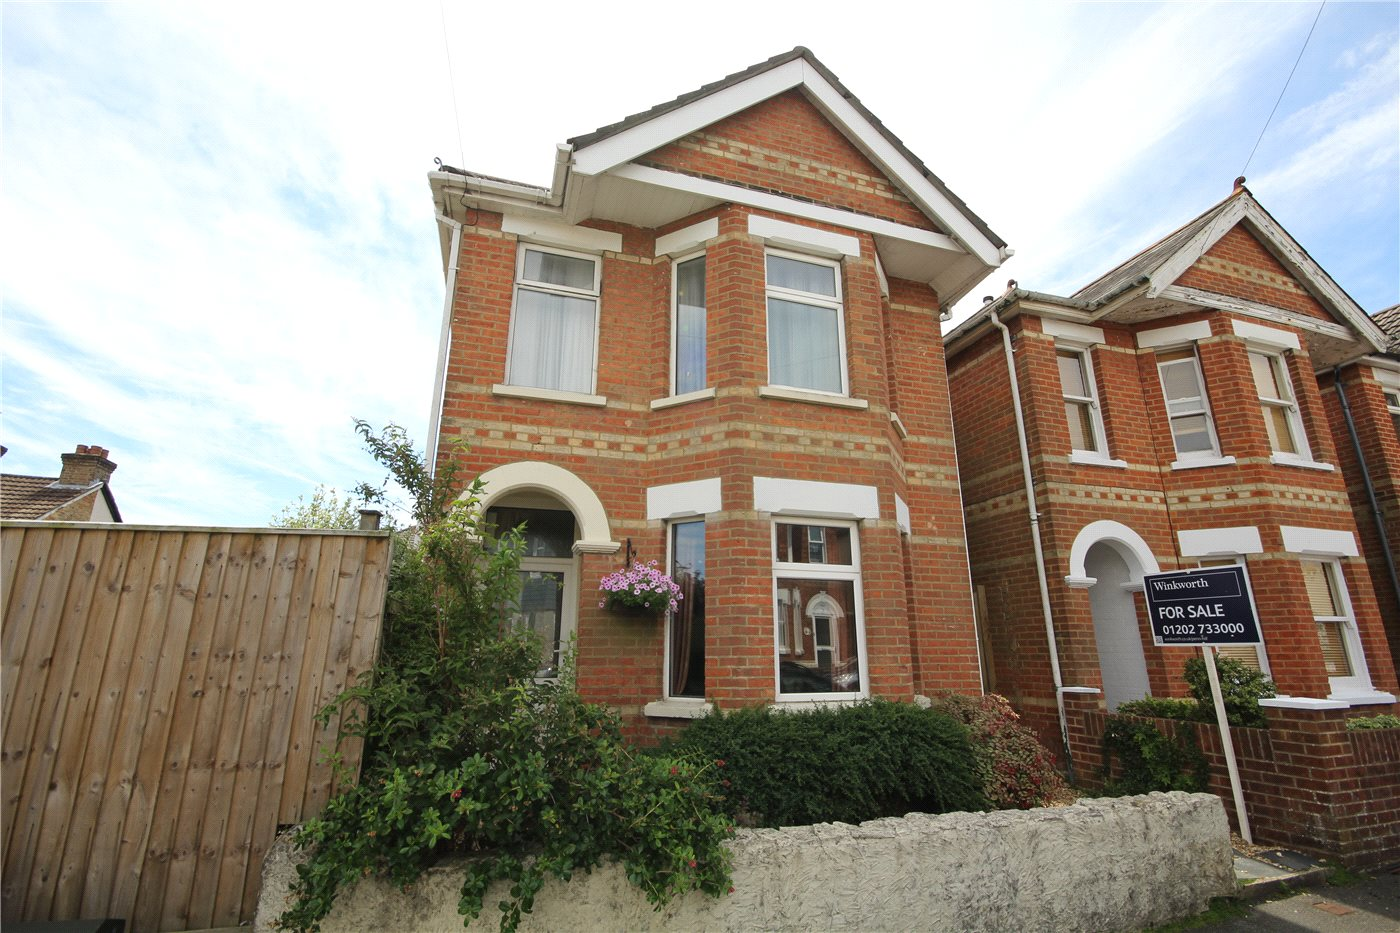 3 Bedrooms Detached House for sale in Lyell Road, Poole, Dorset, BH12